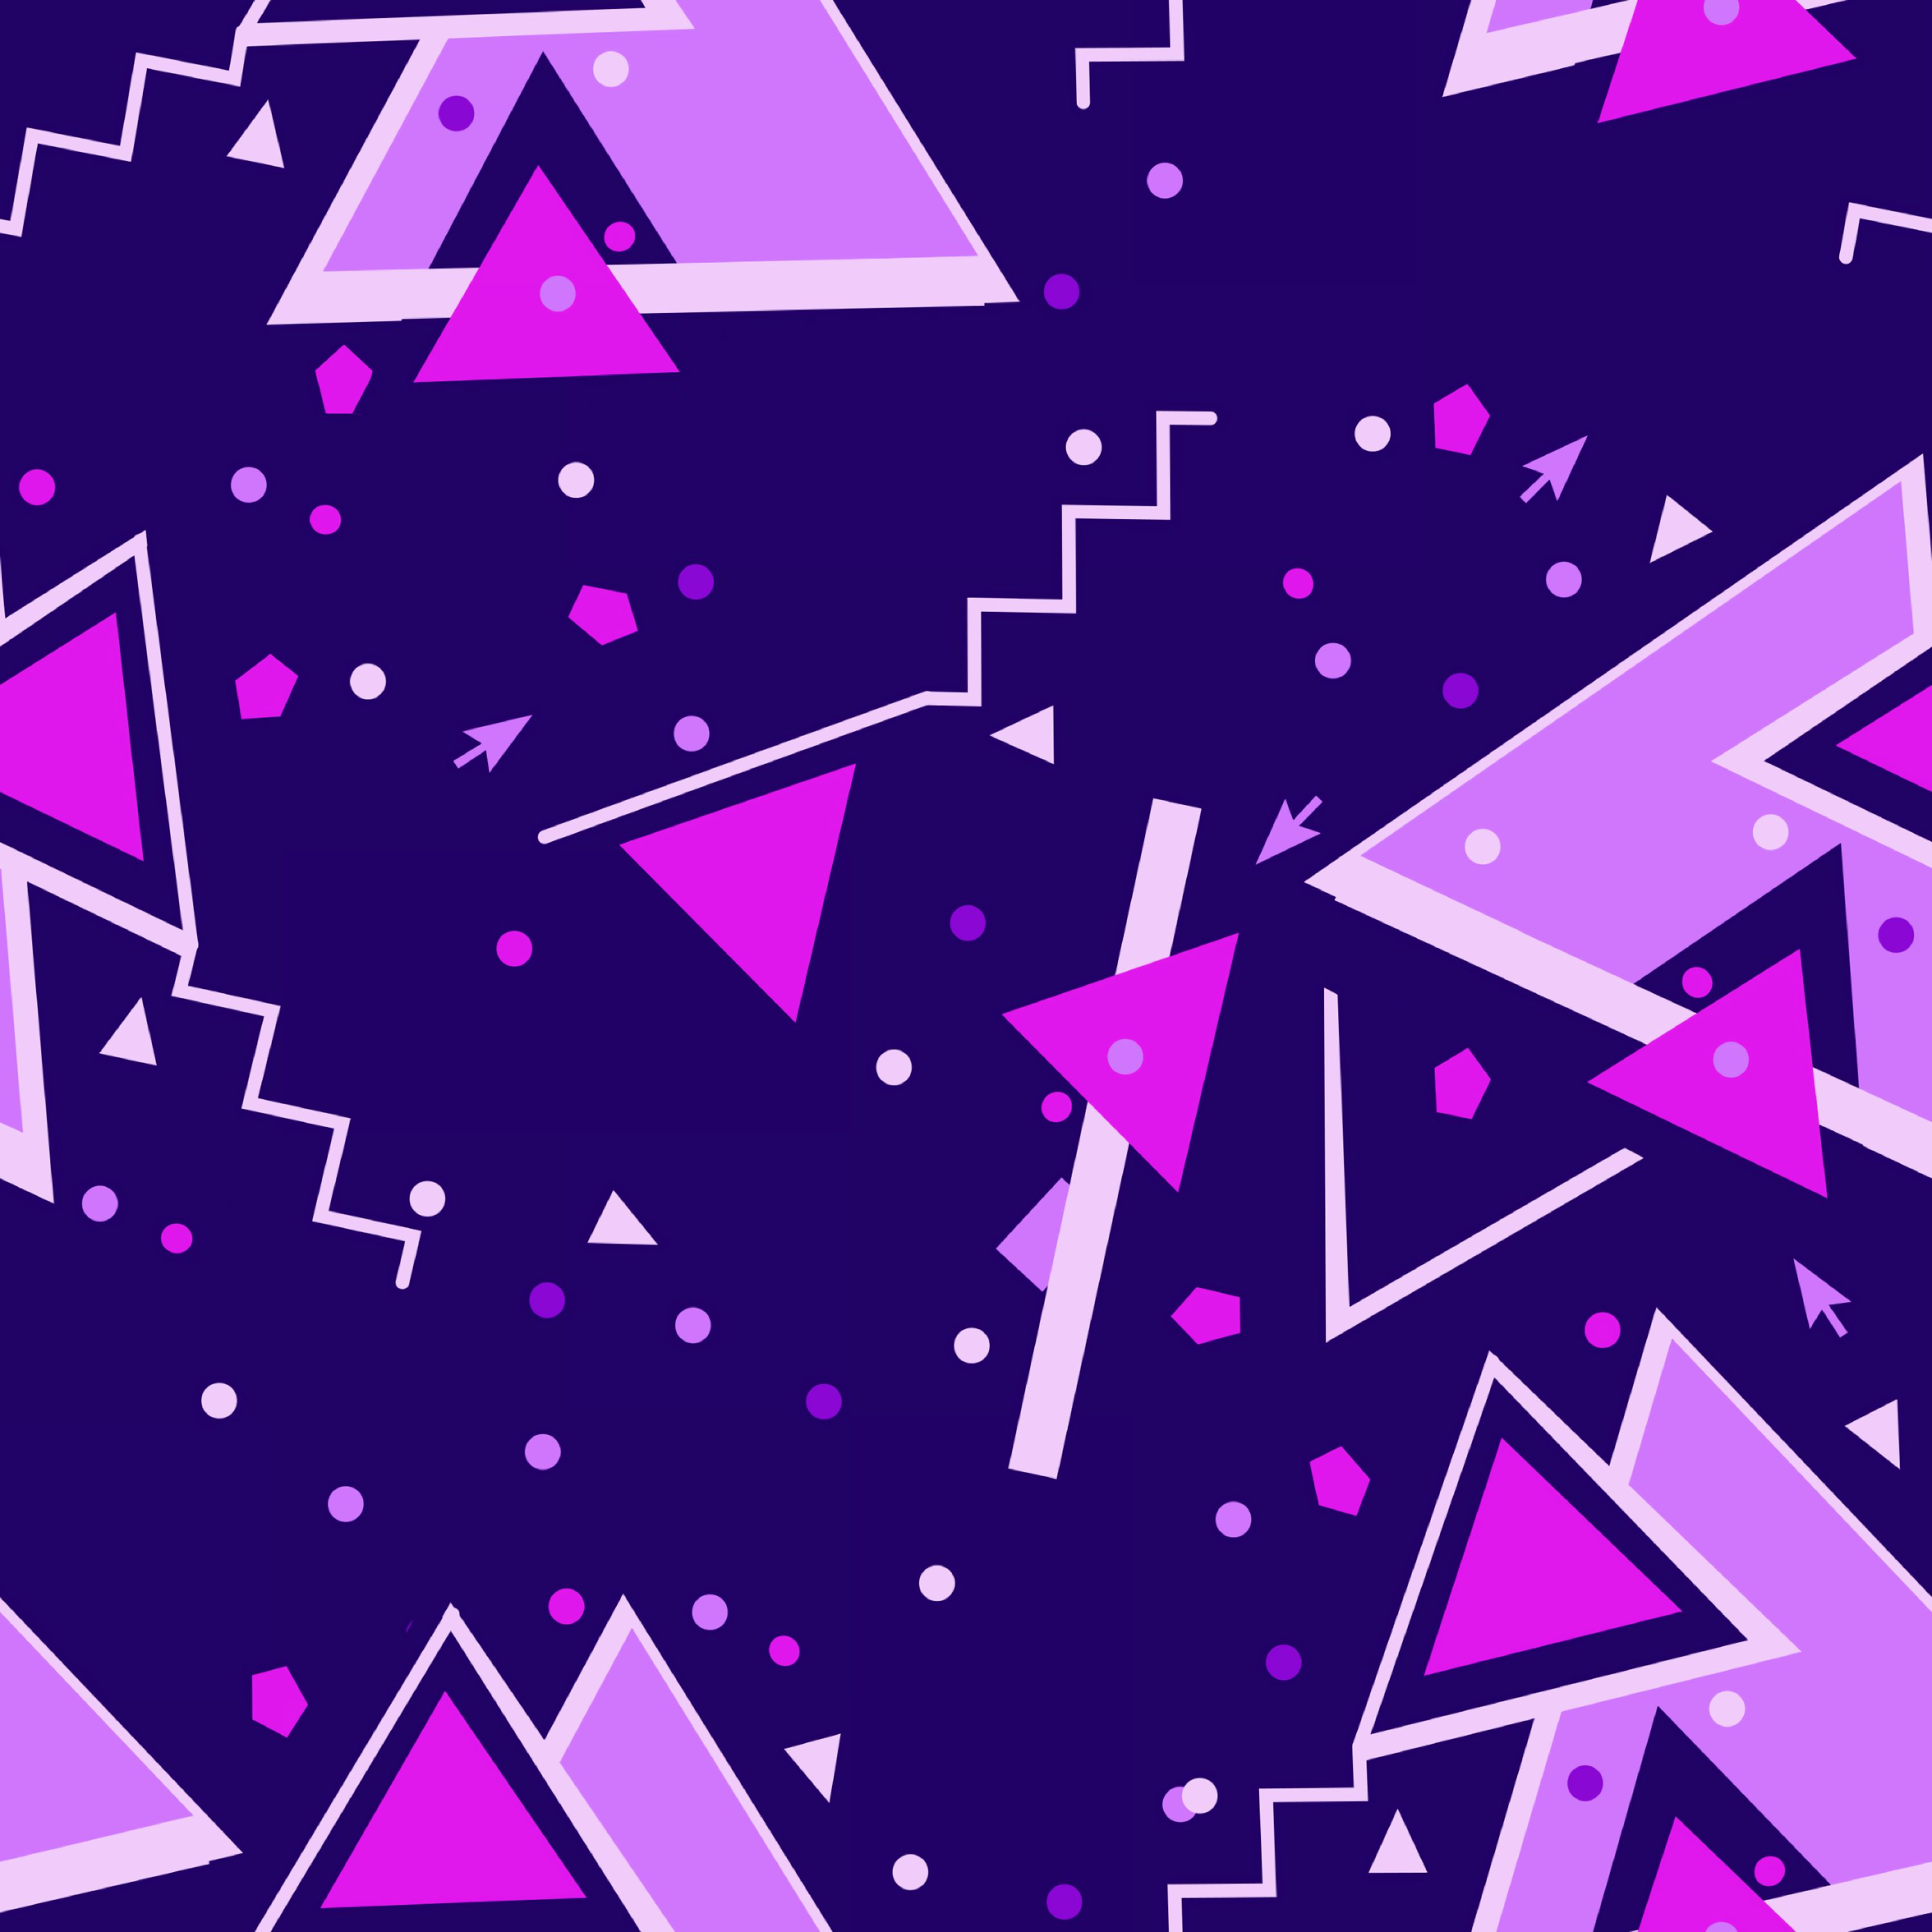 130227 download wallpaper Multicolored, Motley, Texture, Lines, Textures, Form, Forms, Geometric, Triangle, Triangles screensavers and pictures for free